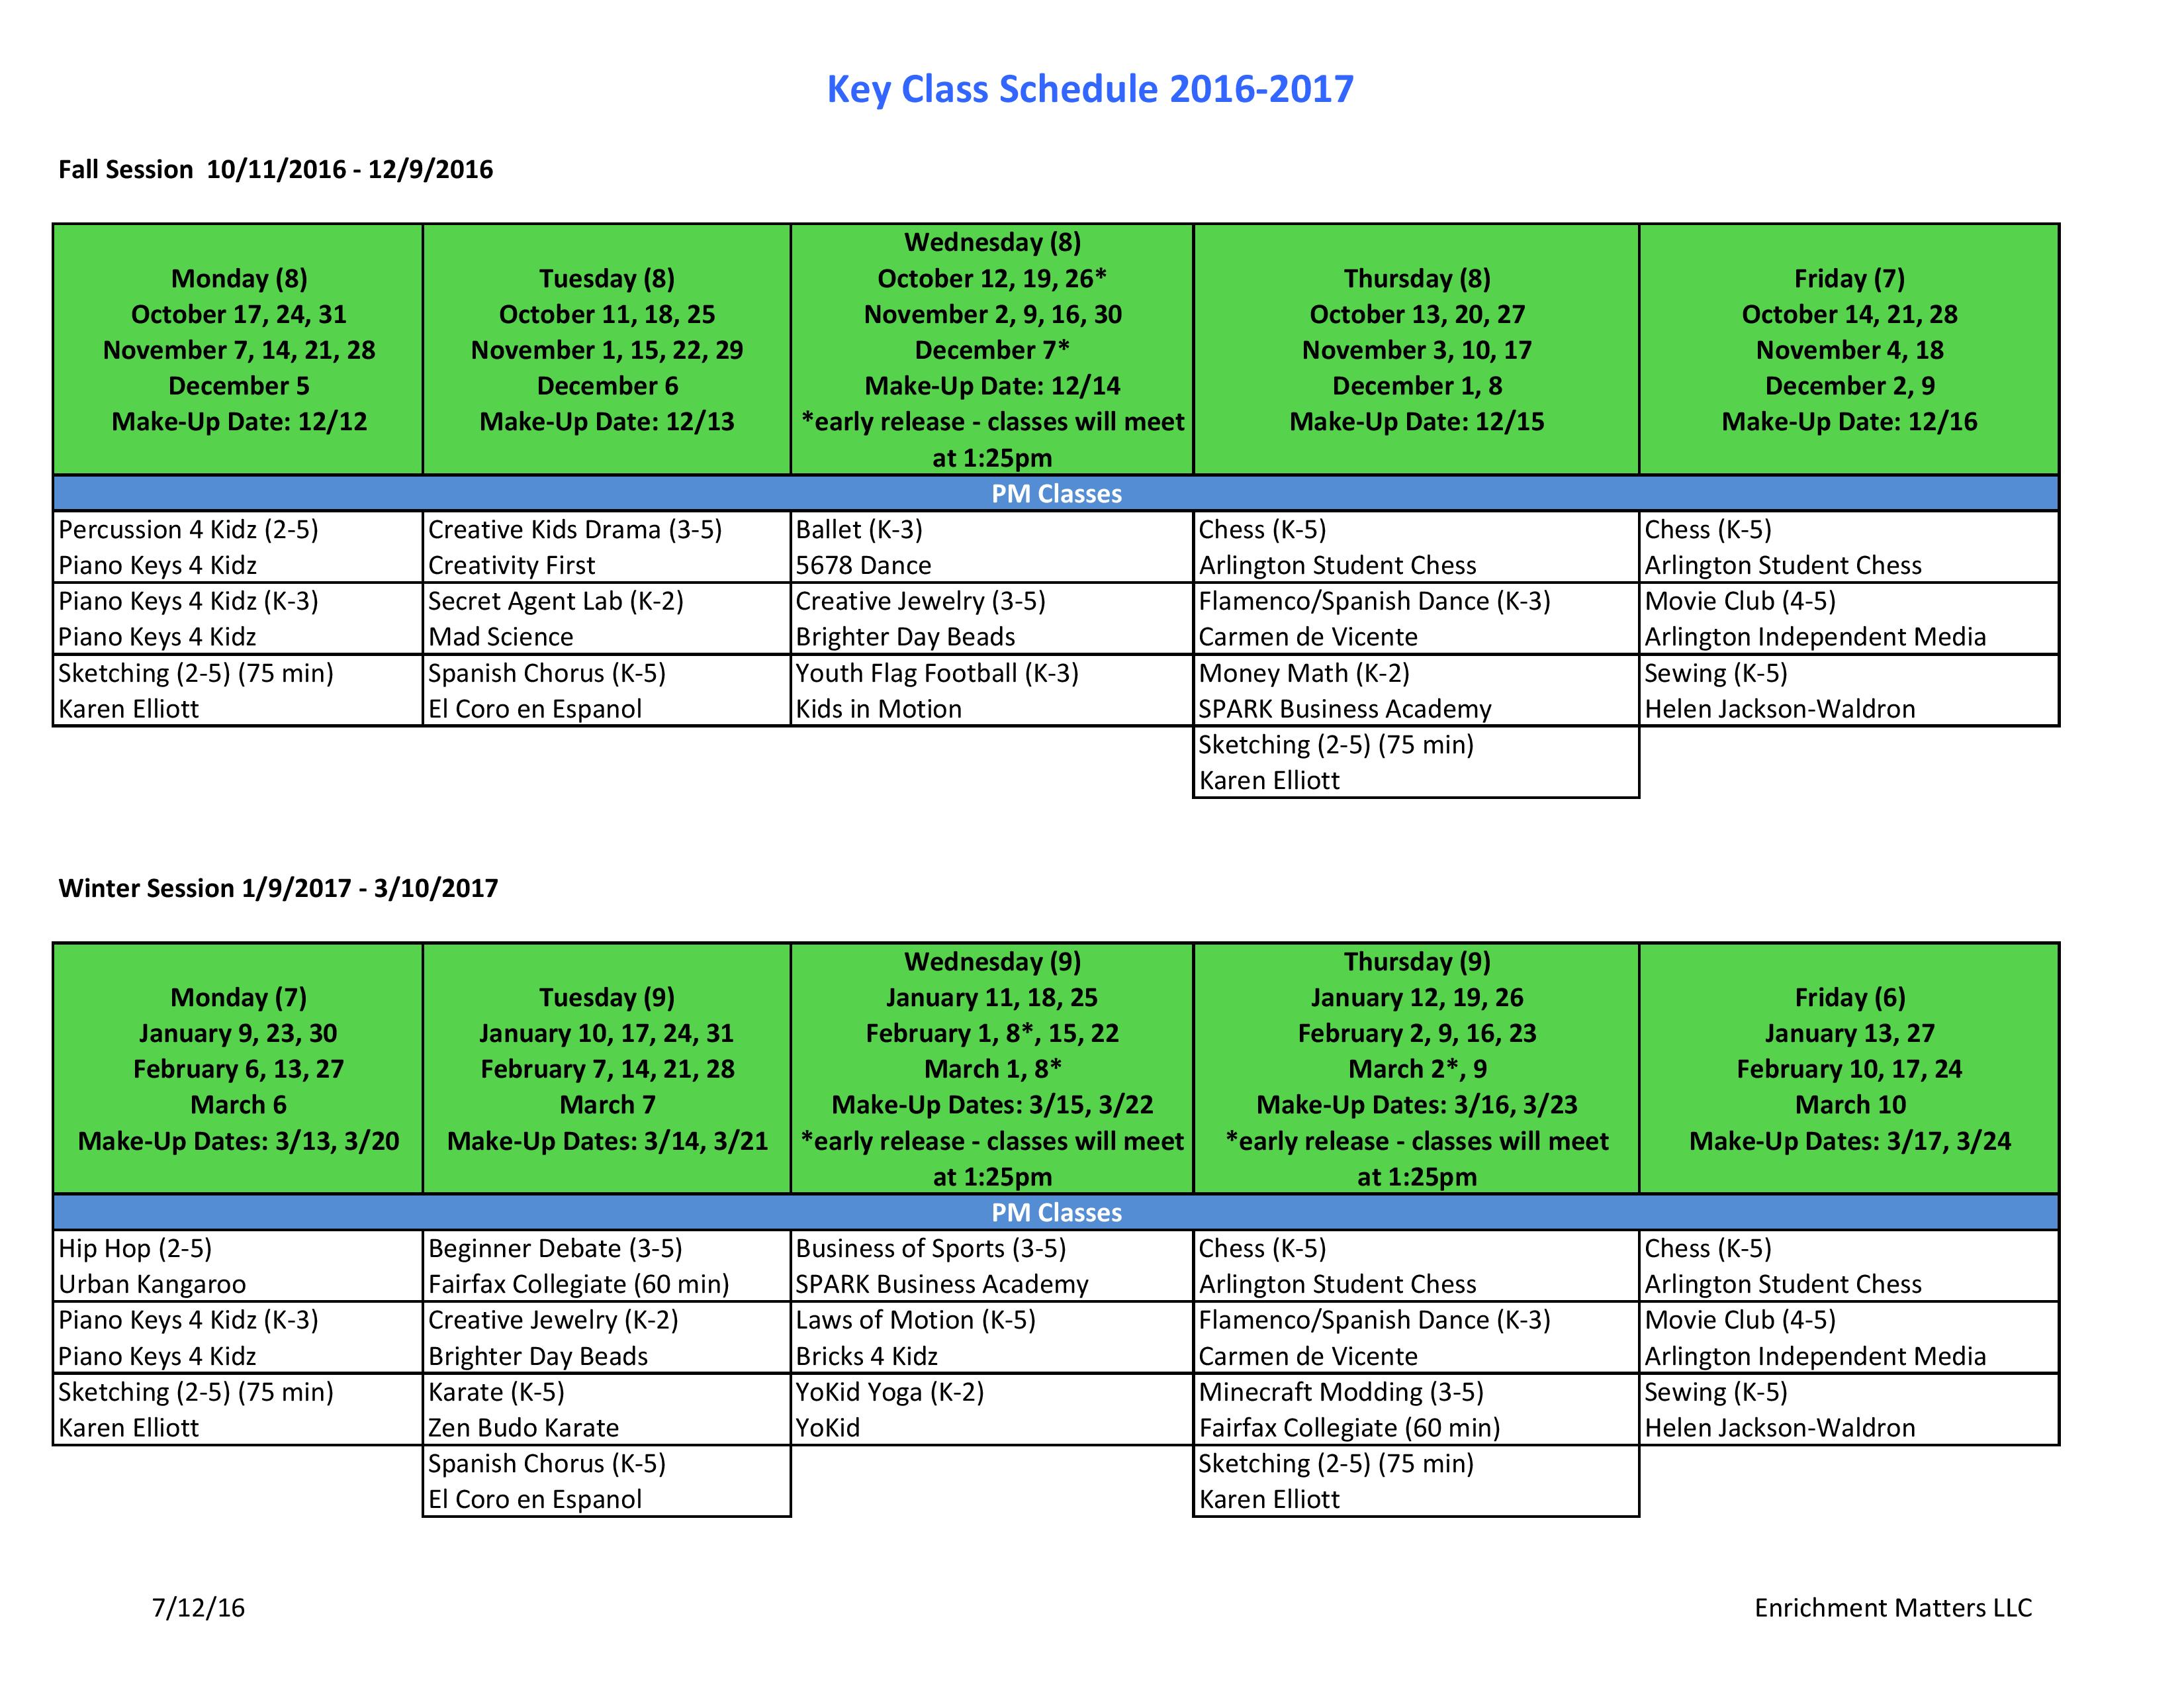 Key Class Schedule 2016-2017-page-001